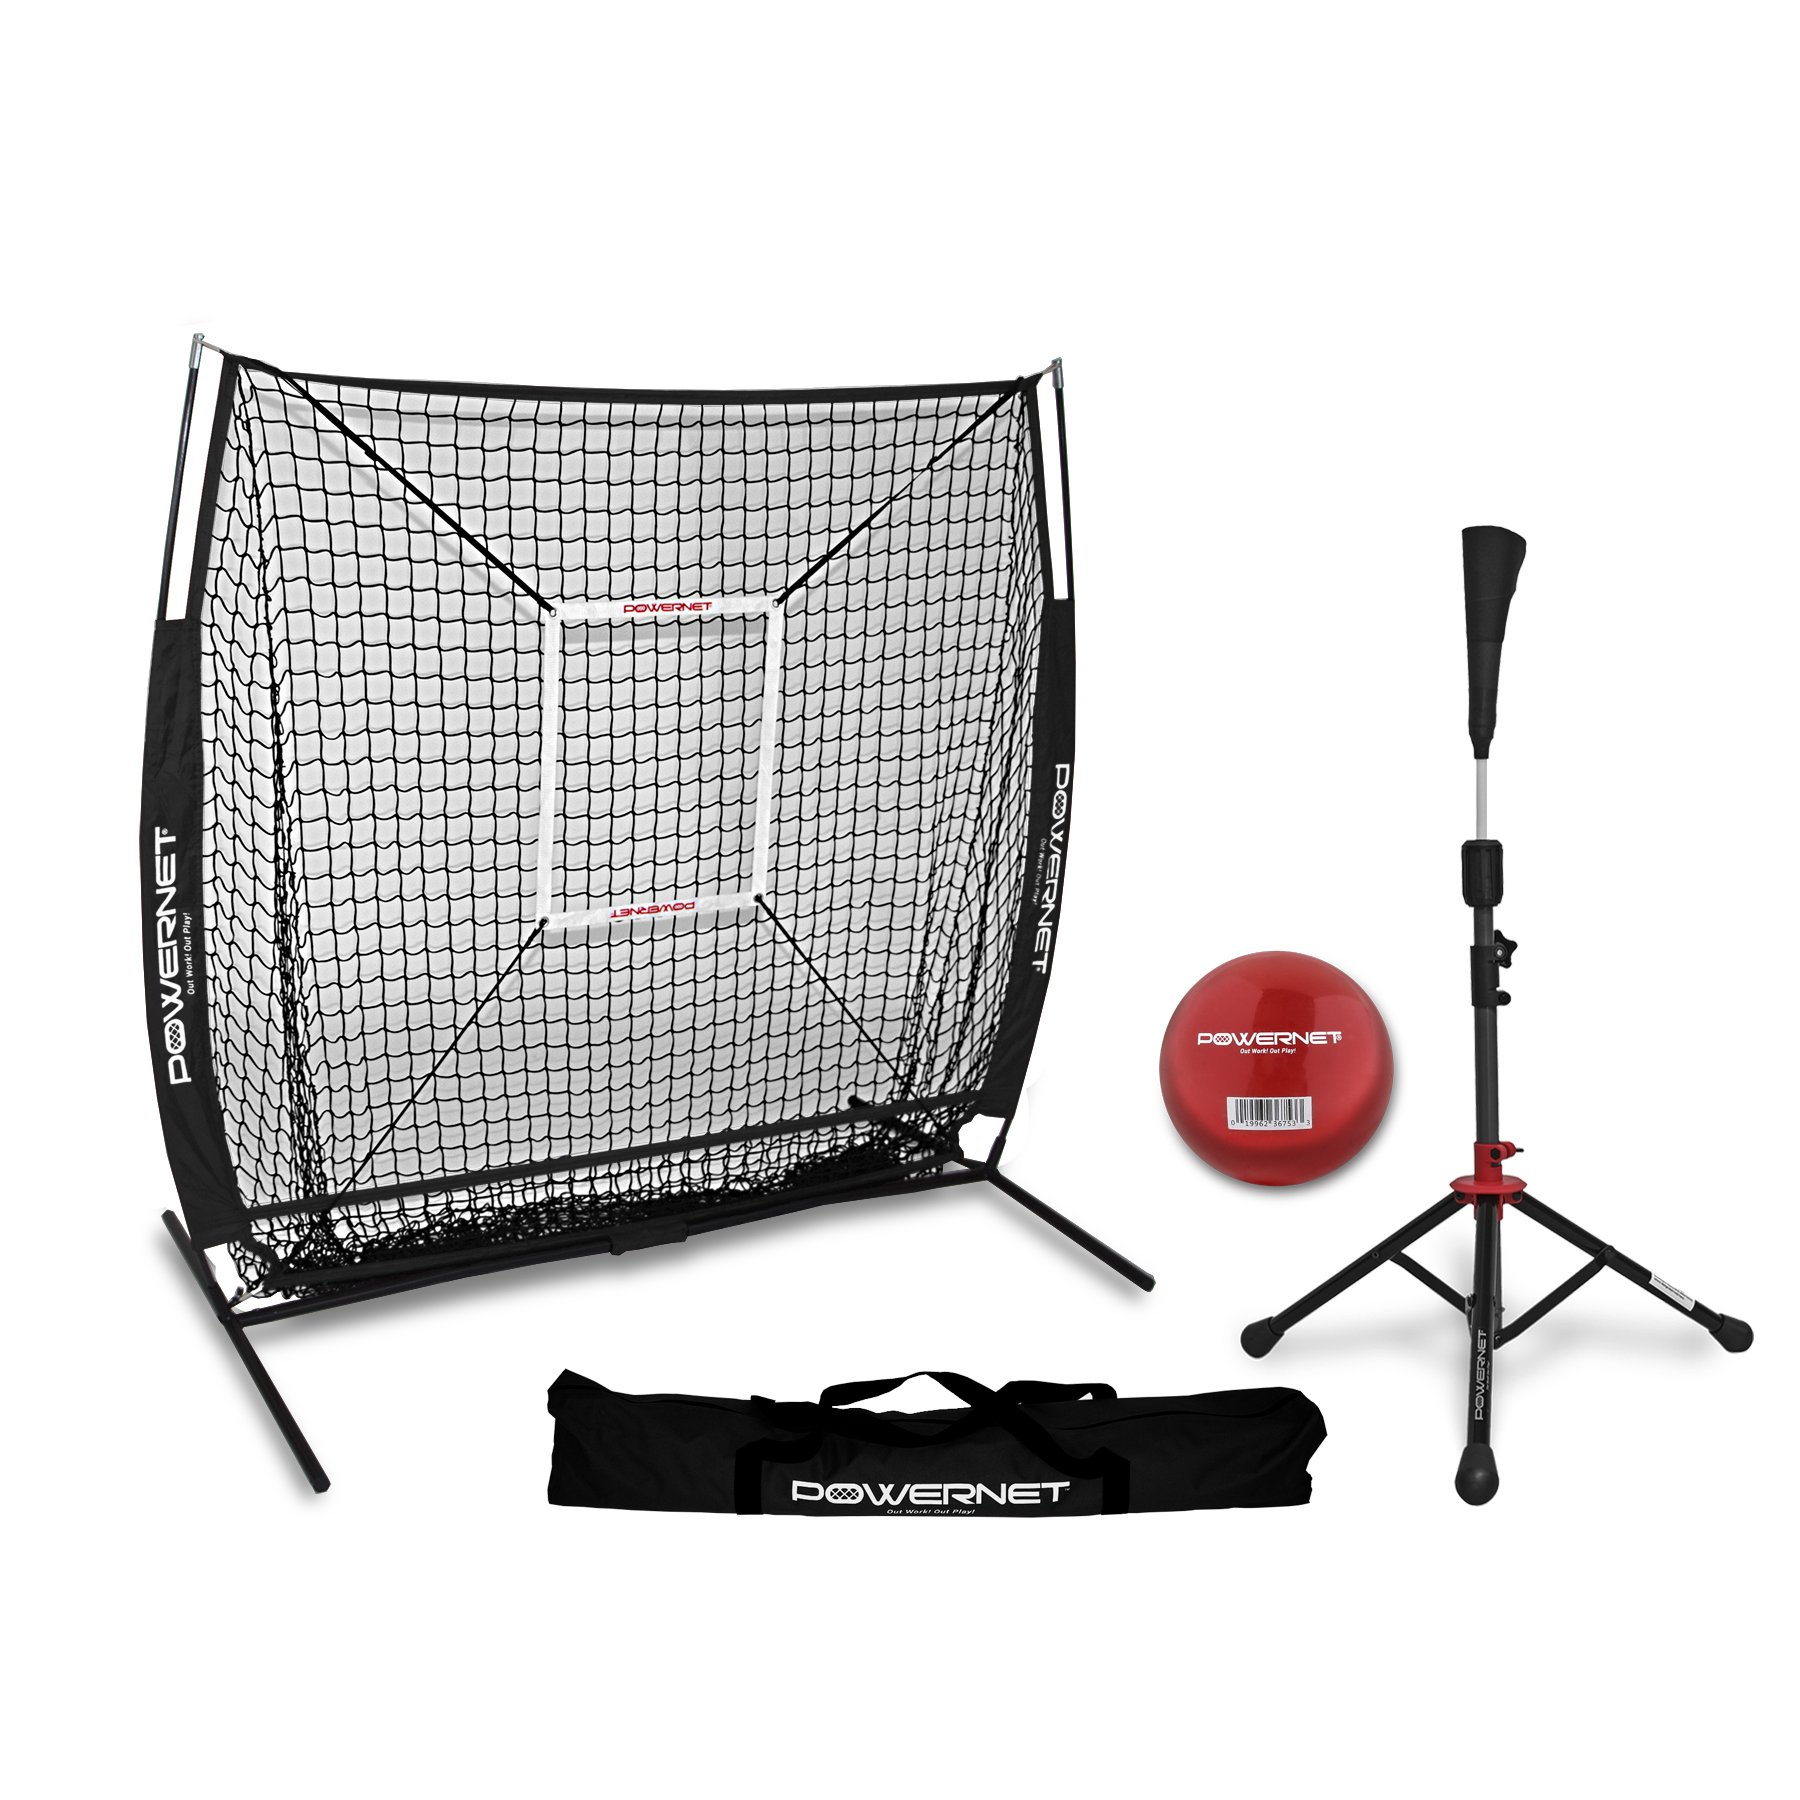 PowerNet 5x5 Practice Net + Deluxe Tee + Strike Zone + Weighted Training Ball Bundle (Black) | Baseball Softball Pitching Batting Coaching Pack | Work on Pitch Accuracy | Build Plate Confidence